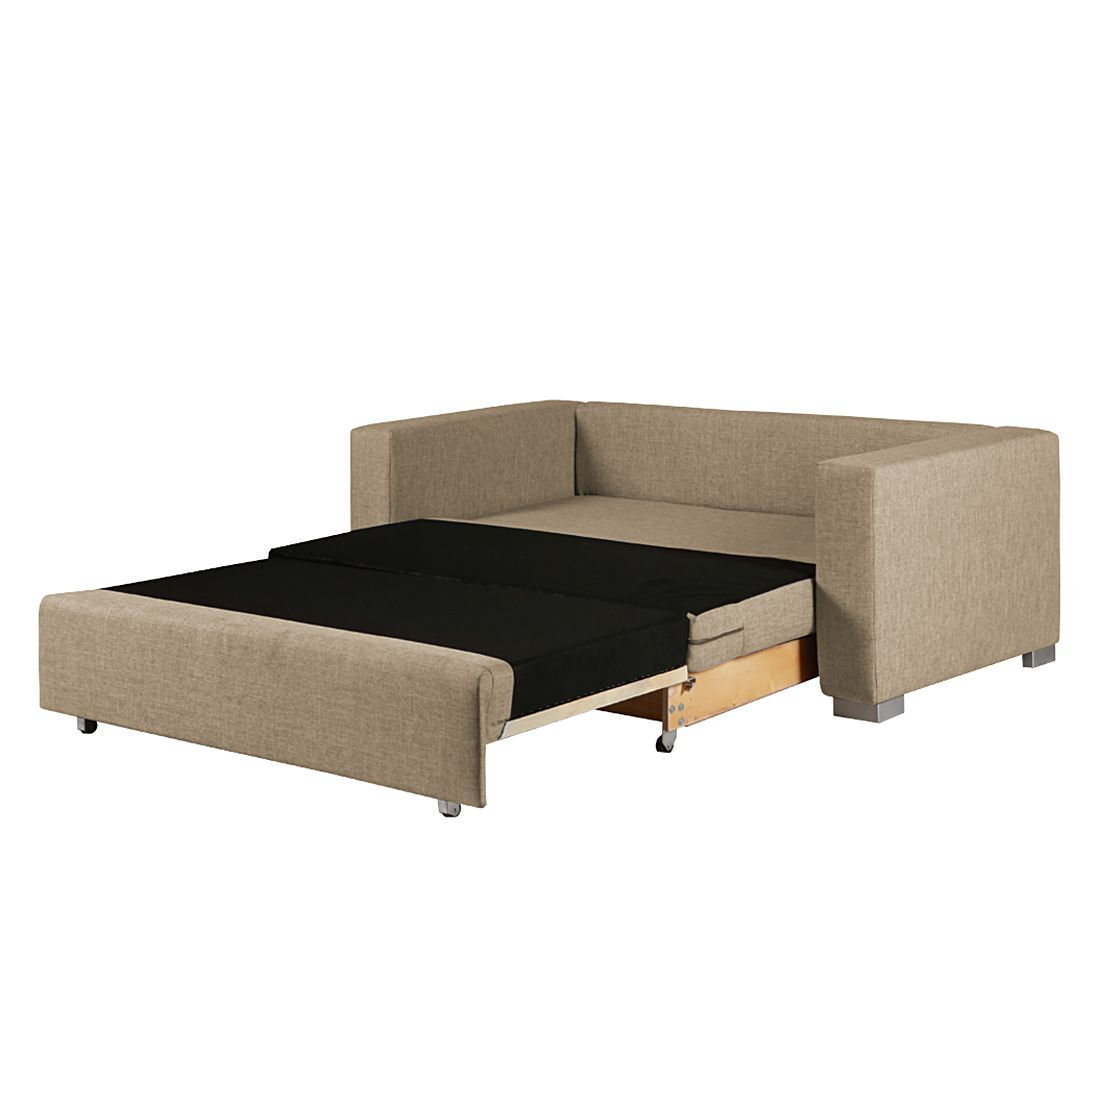 Schlafsofa latina webstoff sand 170 cm roomscape for Schlafsofa 170 cm